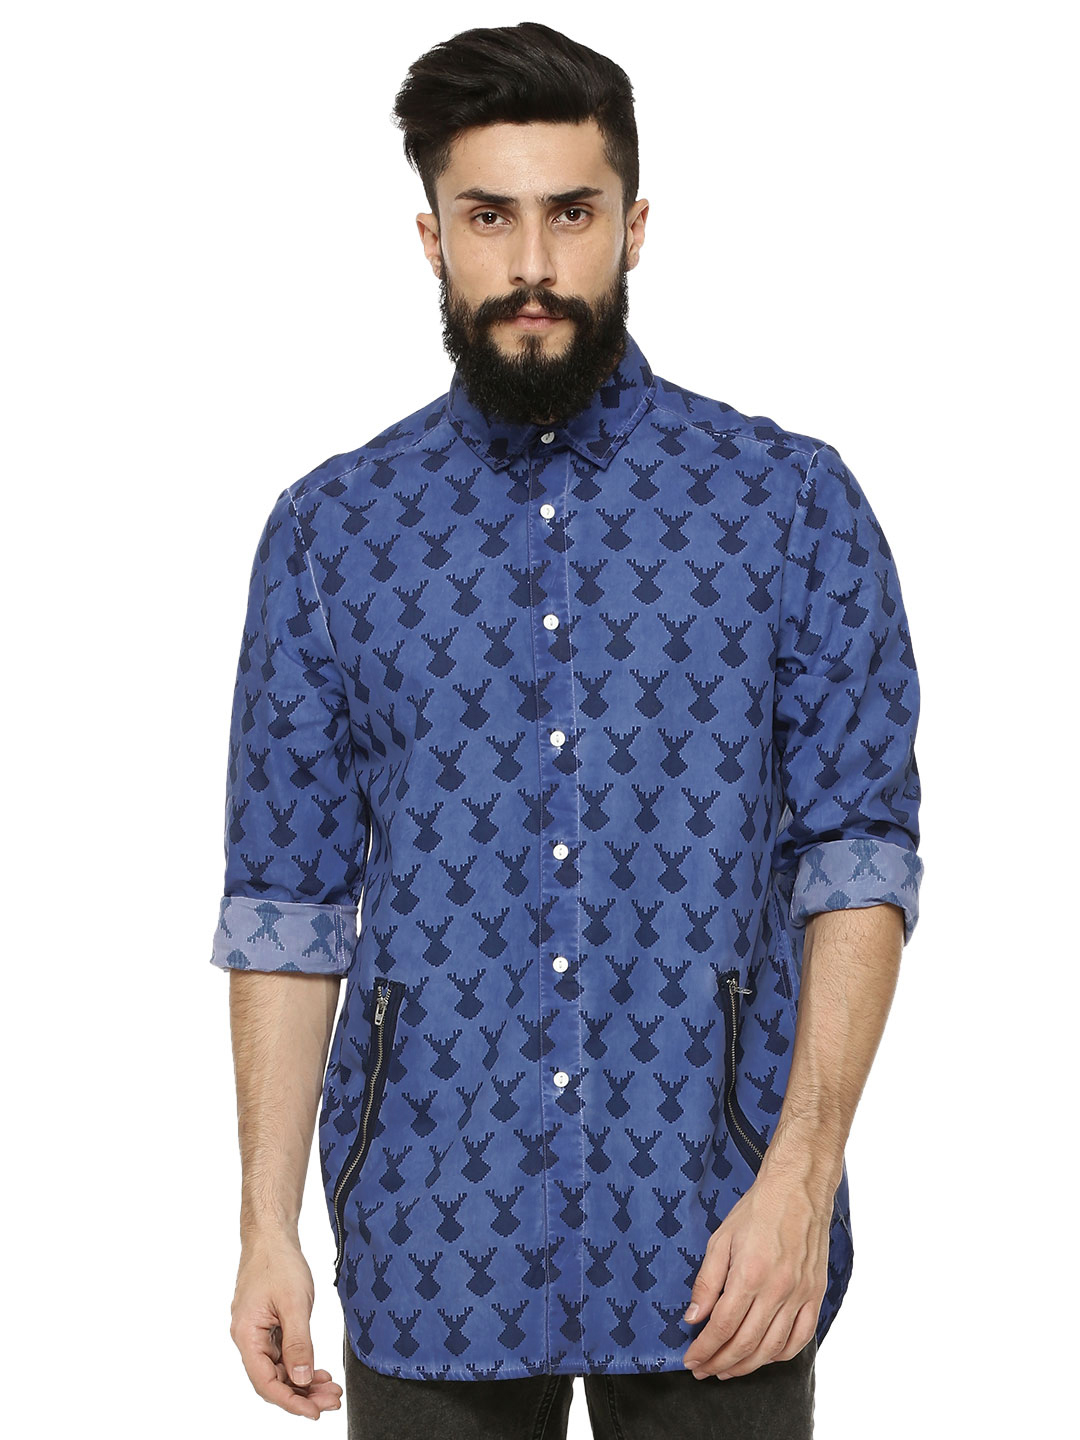 Styx & Stones Blue Antler Motif Shirt With Zip Detailing 1